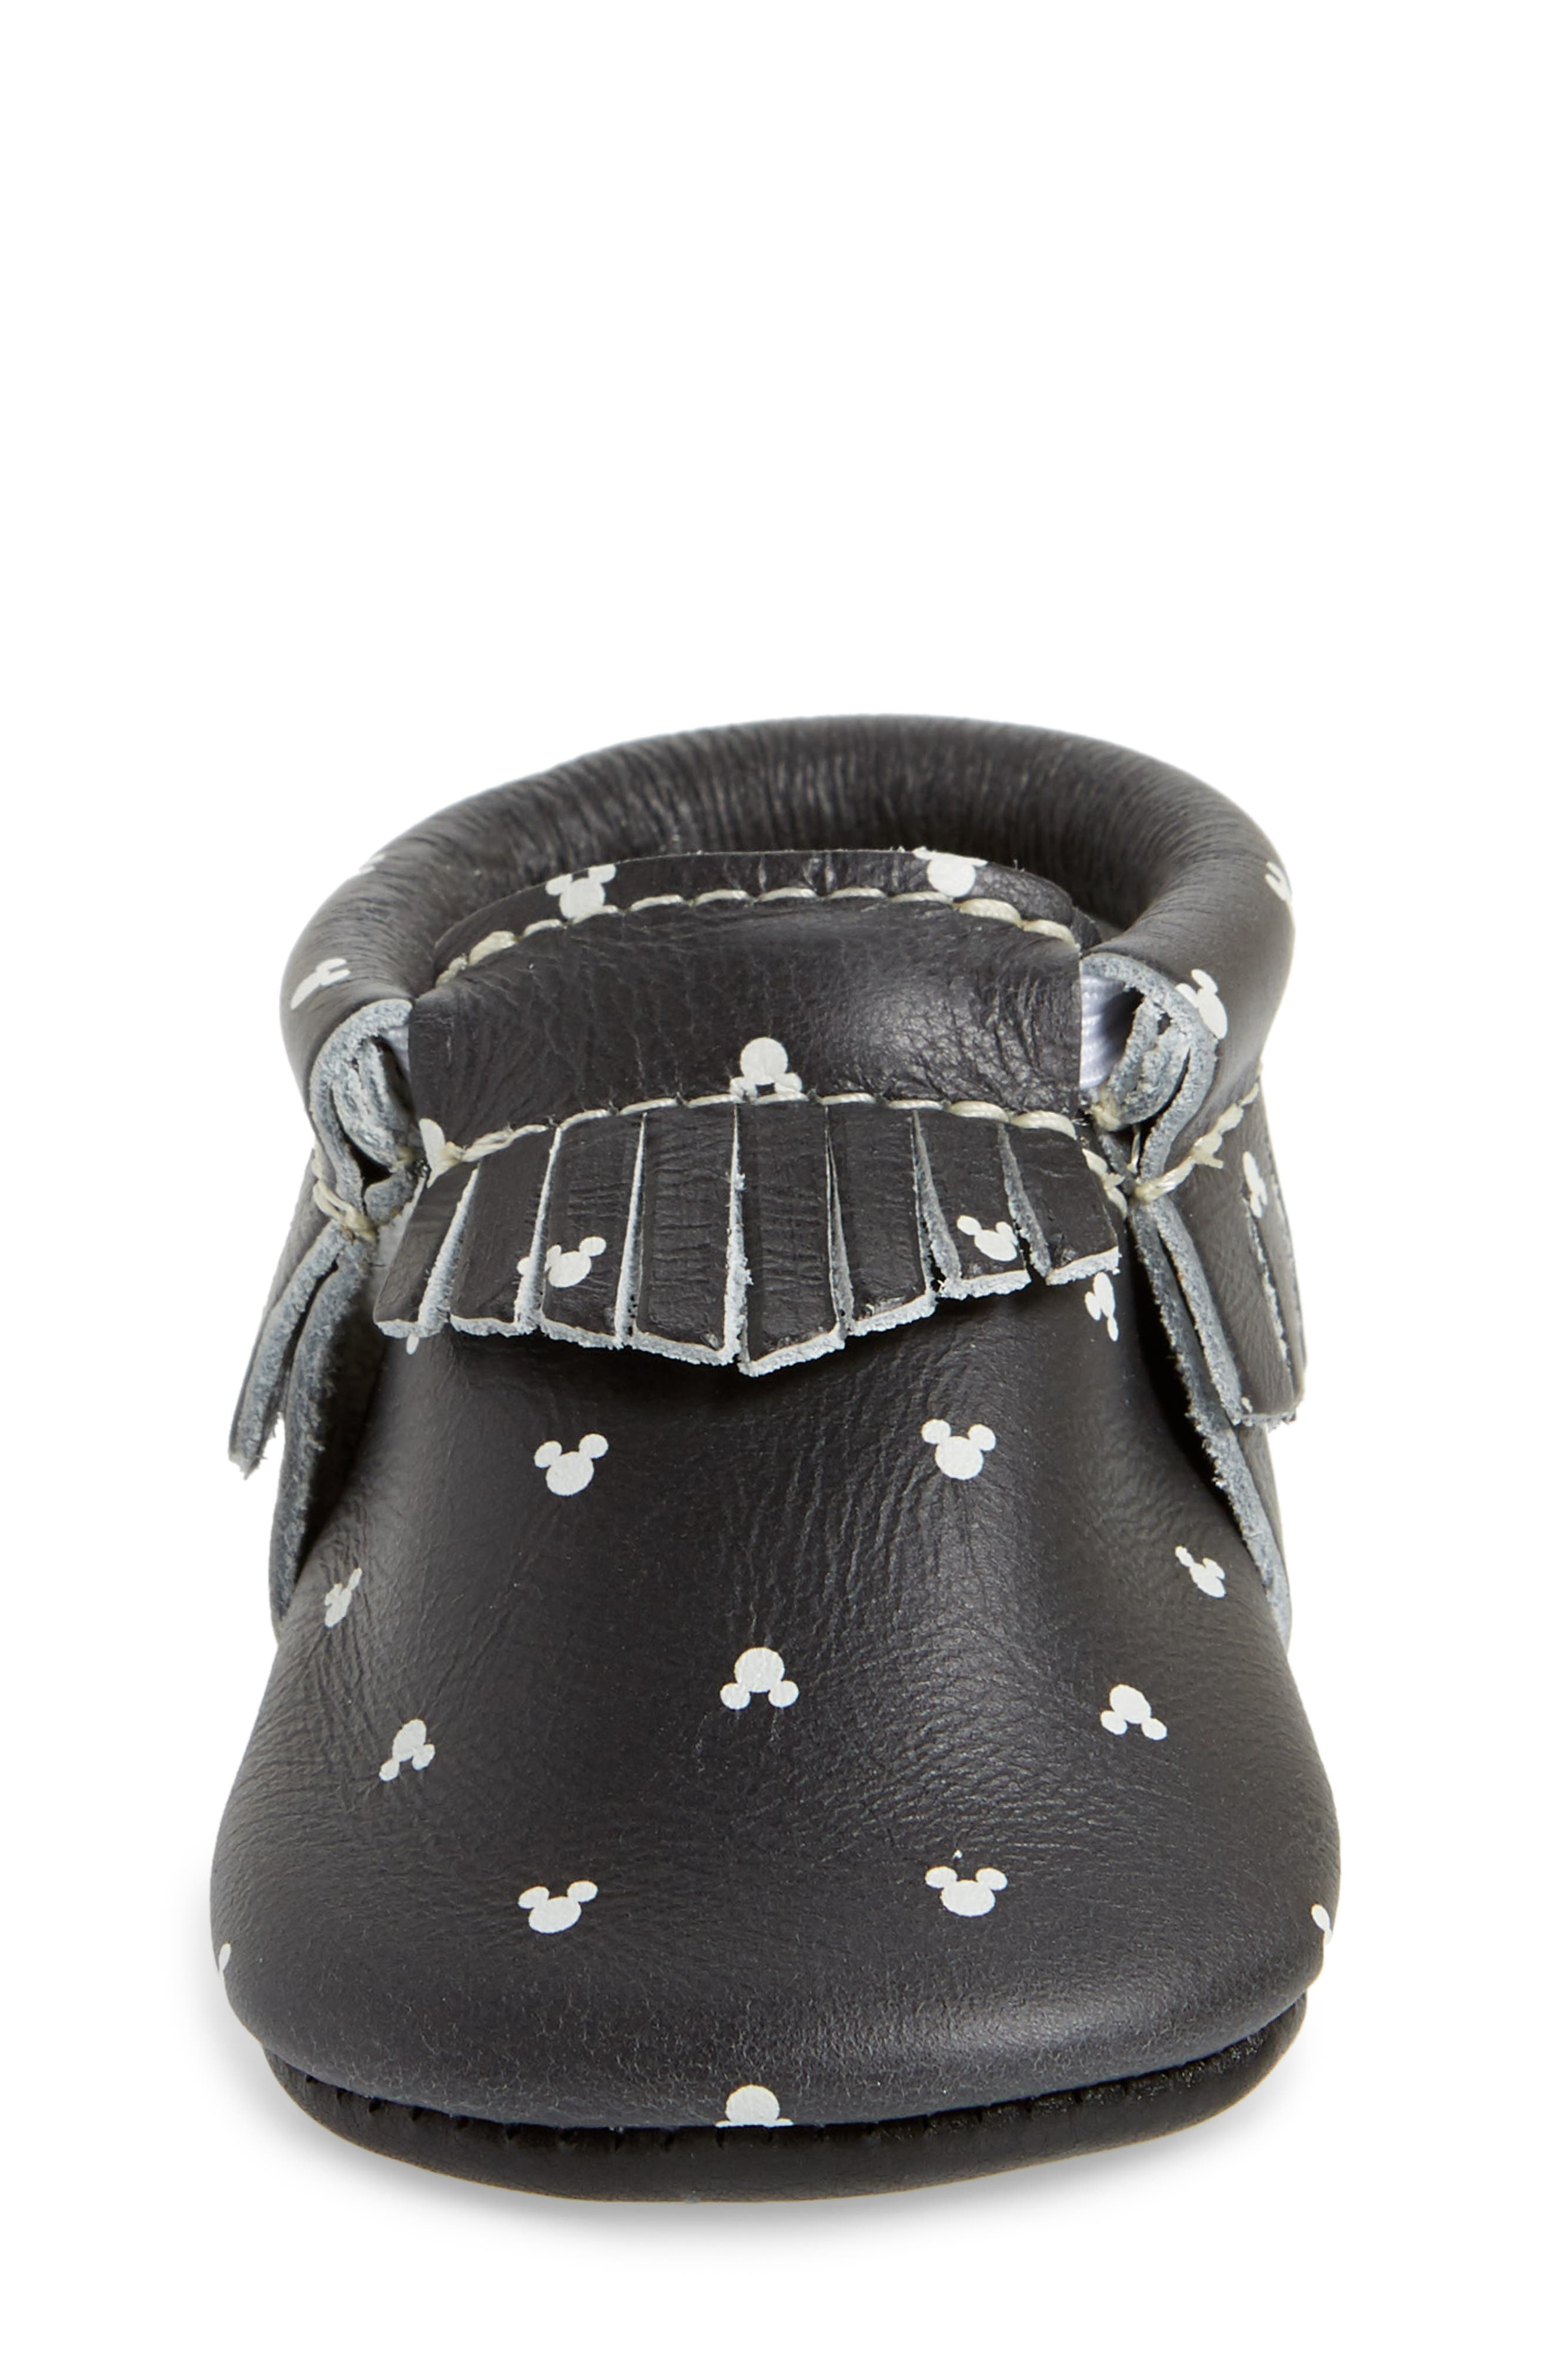 x Disney<sup>®</sup> Mouse Ears Print Moccasin,                             Alternate thumbnail 4, color,                             BLACK LEATHER